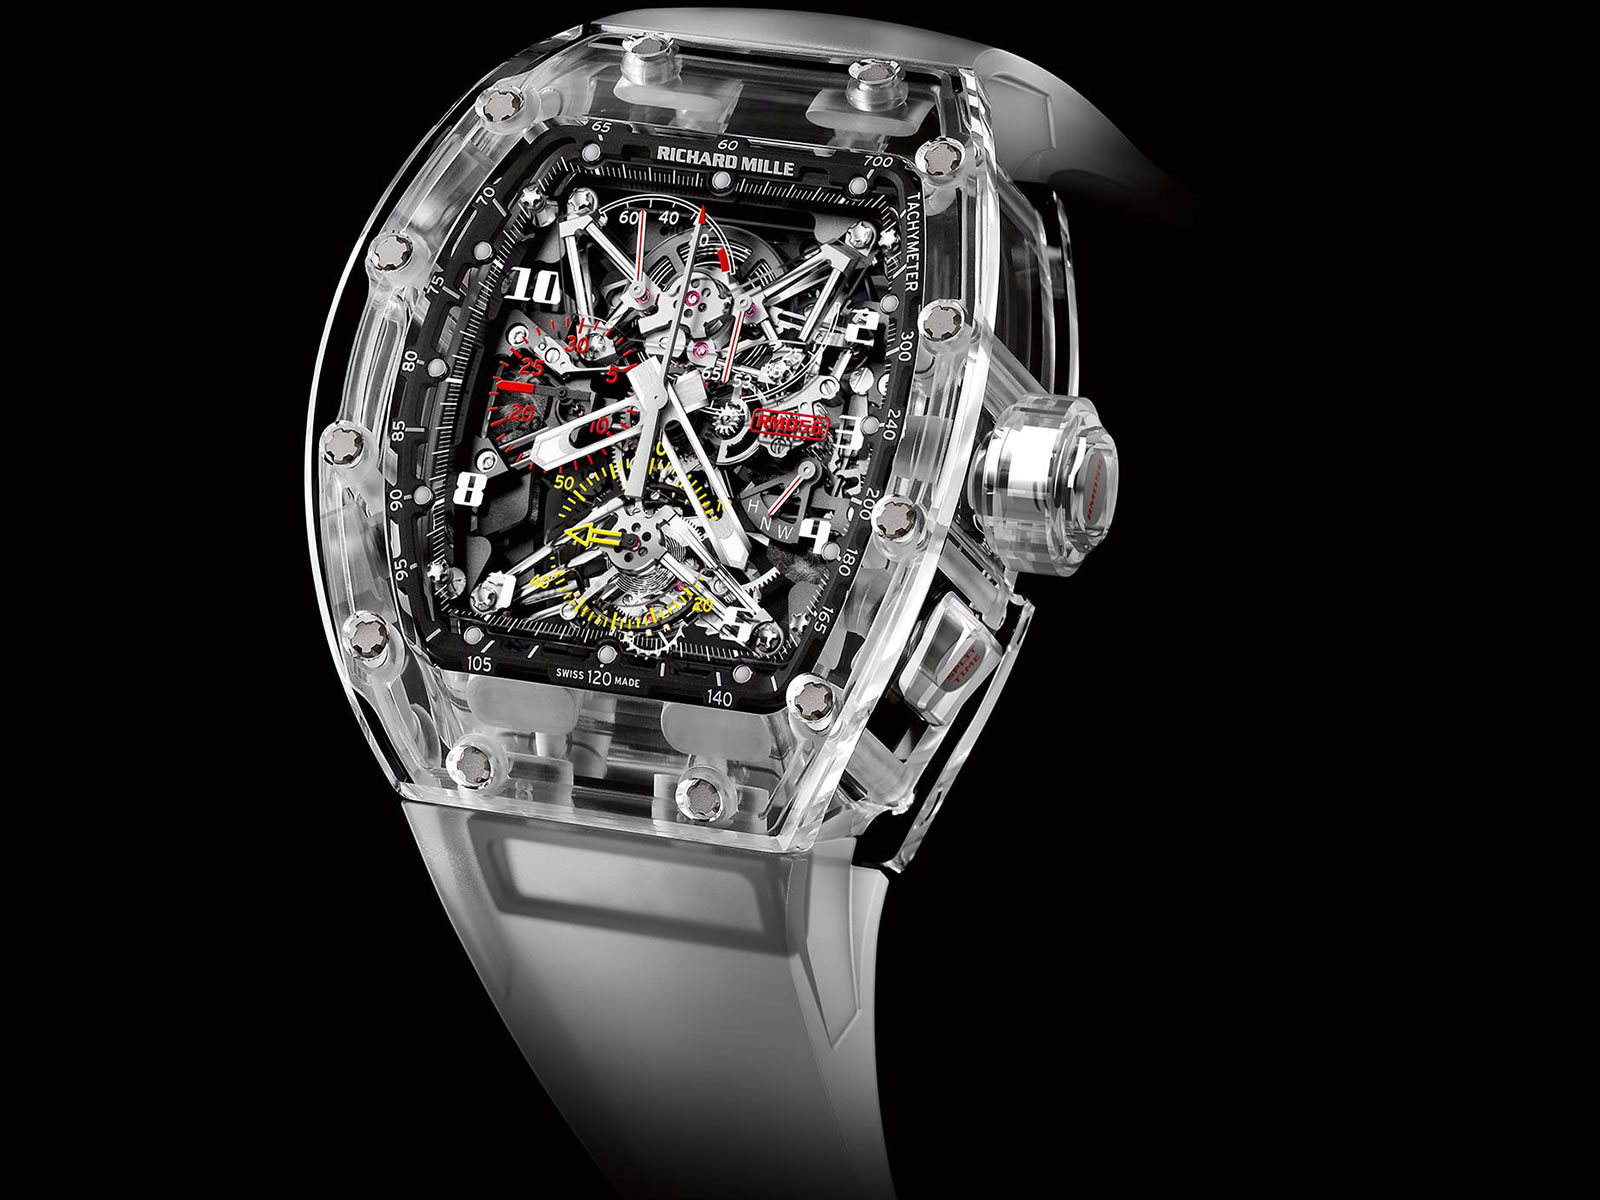 richard-mille-rm-056-tourbillon-split-seconds-chronograph-sapphire-felipe-massa-1-.jpg